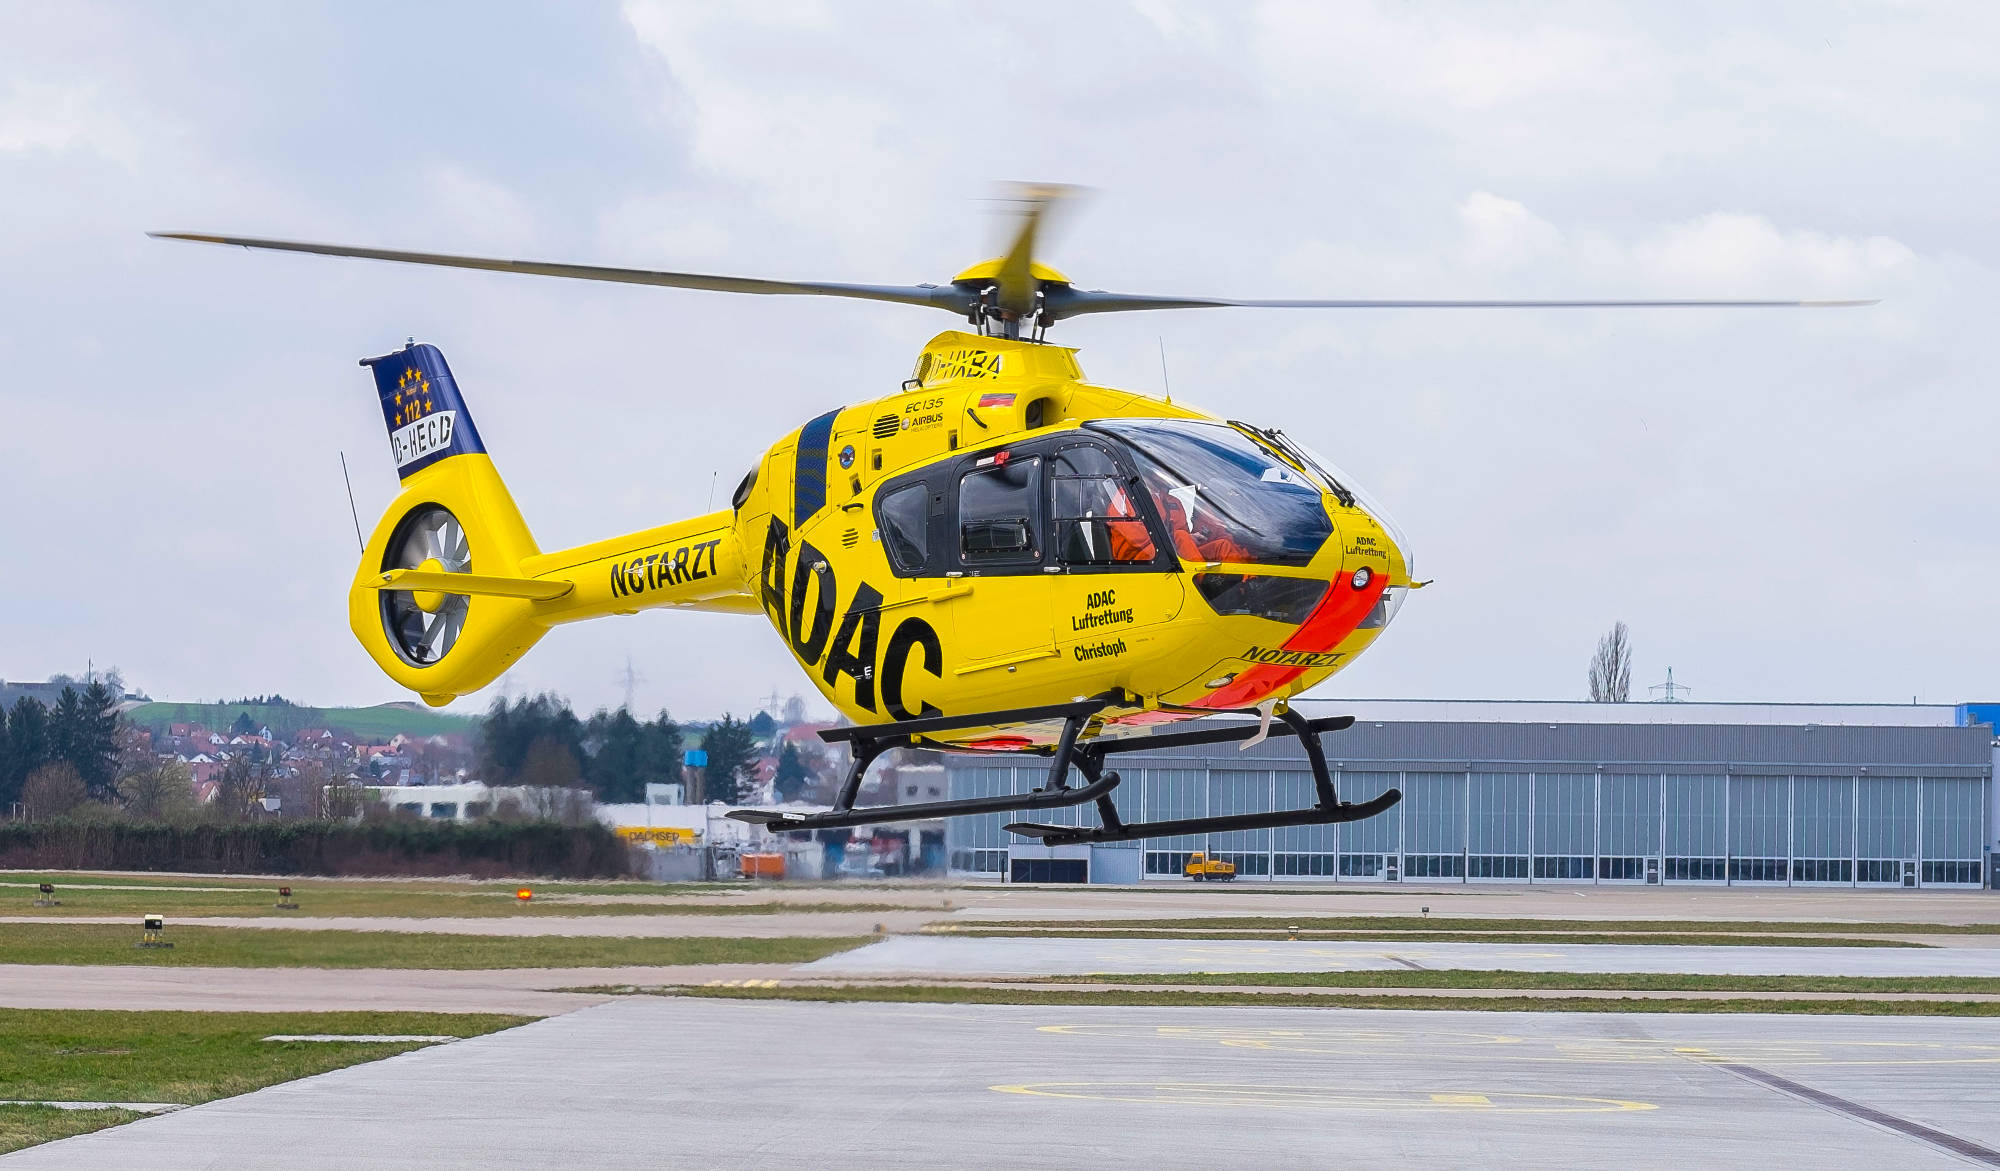 ADAC rescue helicopter germany air